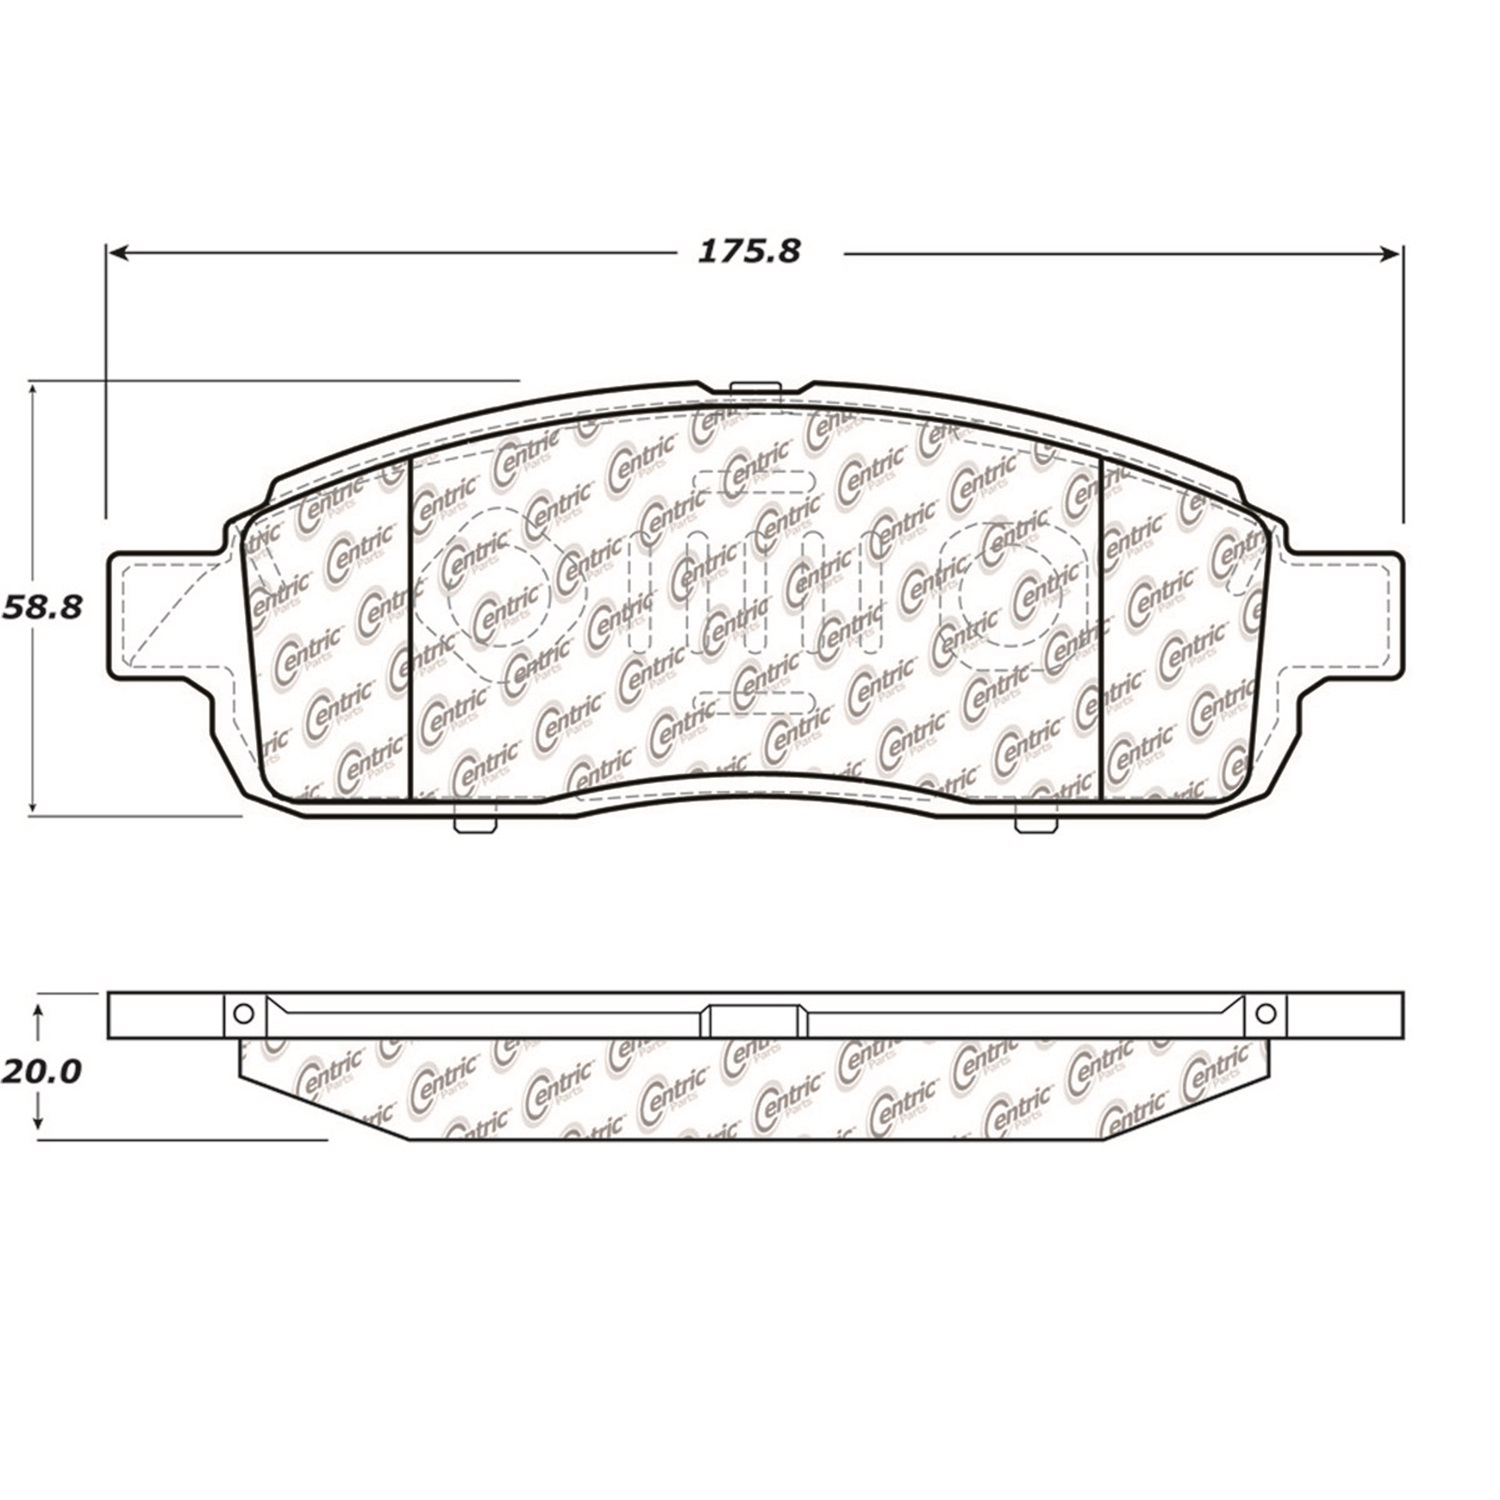 StopTech 104.13920 Disc Brake Pad Fits 09 F-150